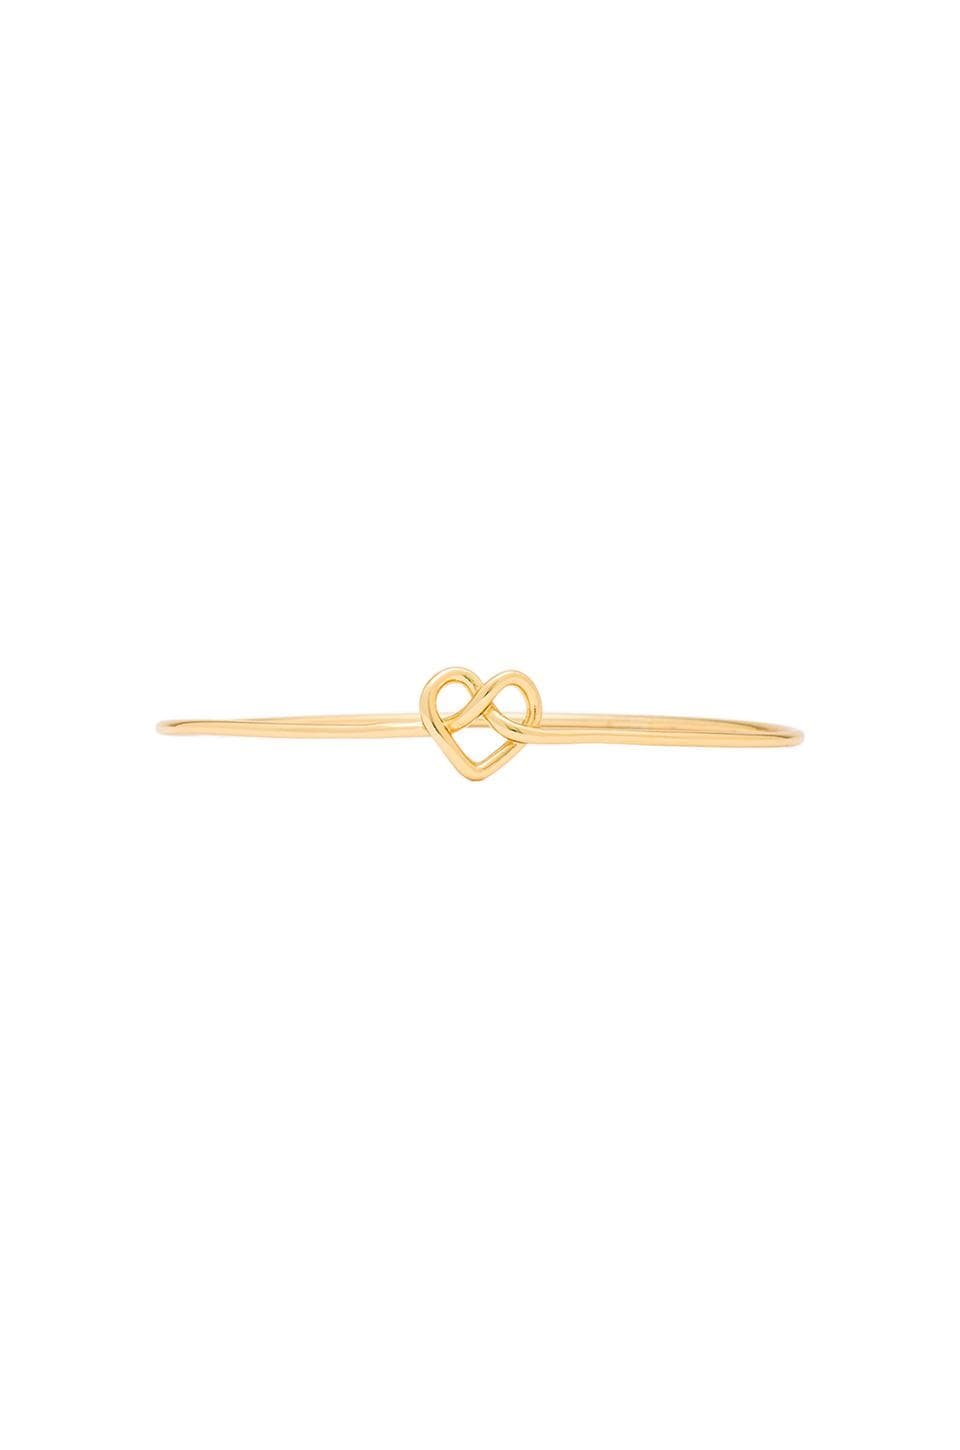 gorjana Cross My Heart Bangle in Gold